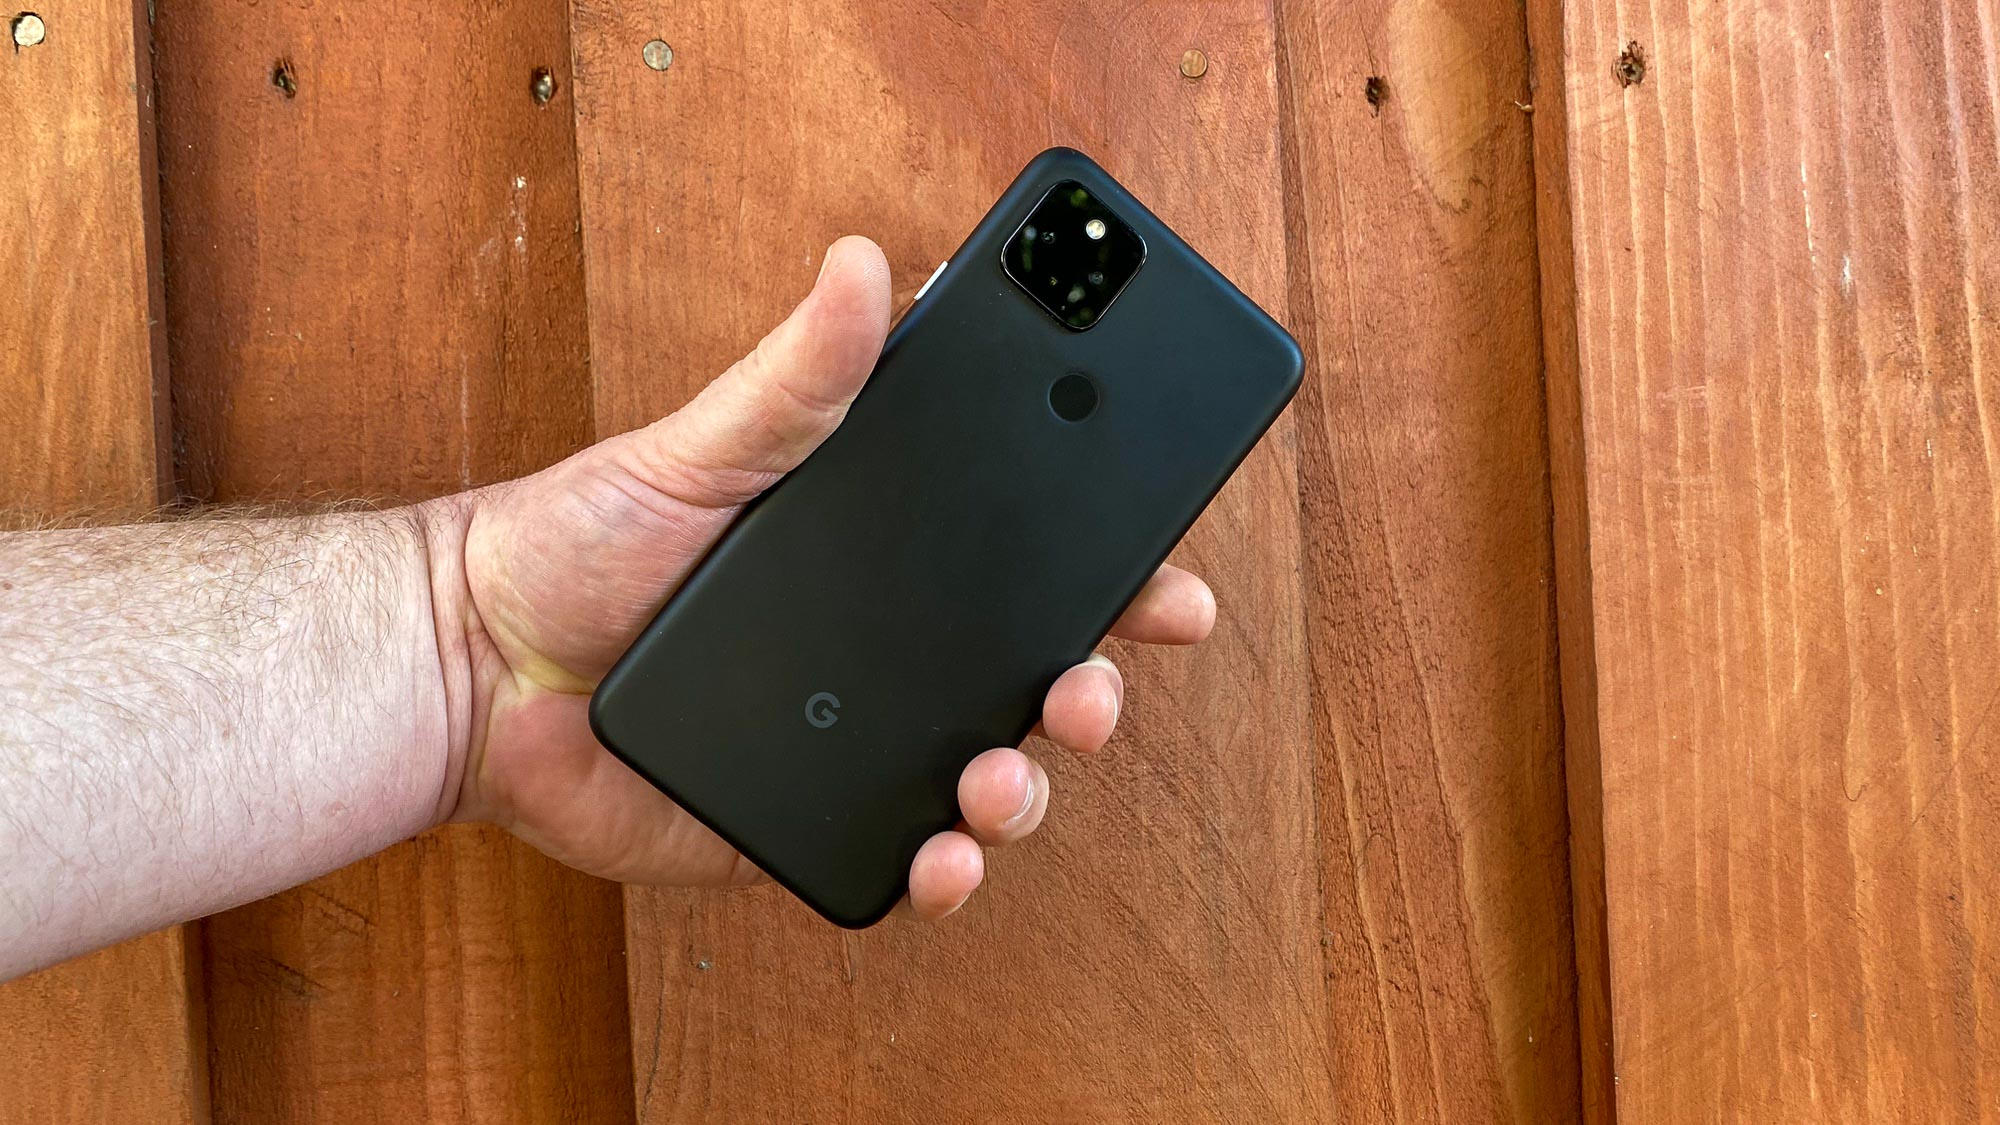 https://www.cnet.com/tech/mobile/google-pixel-4a-5g-specs-review-499-dollars-smartphone-affordable-5g-is-here/